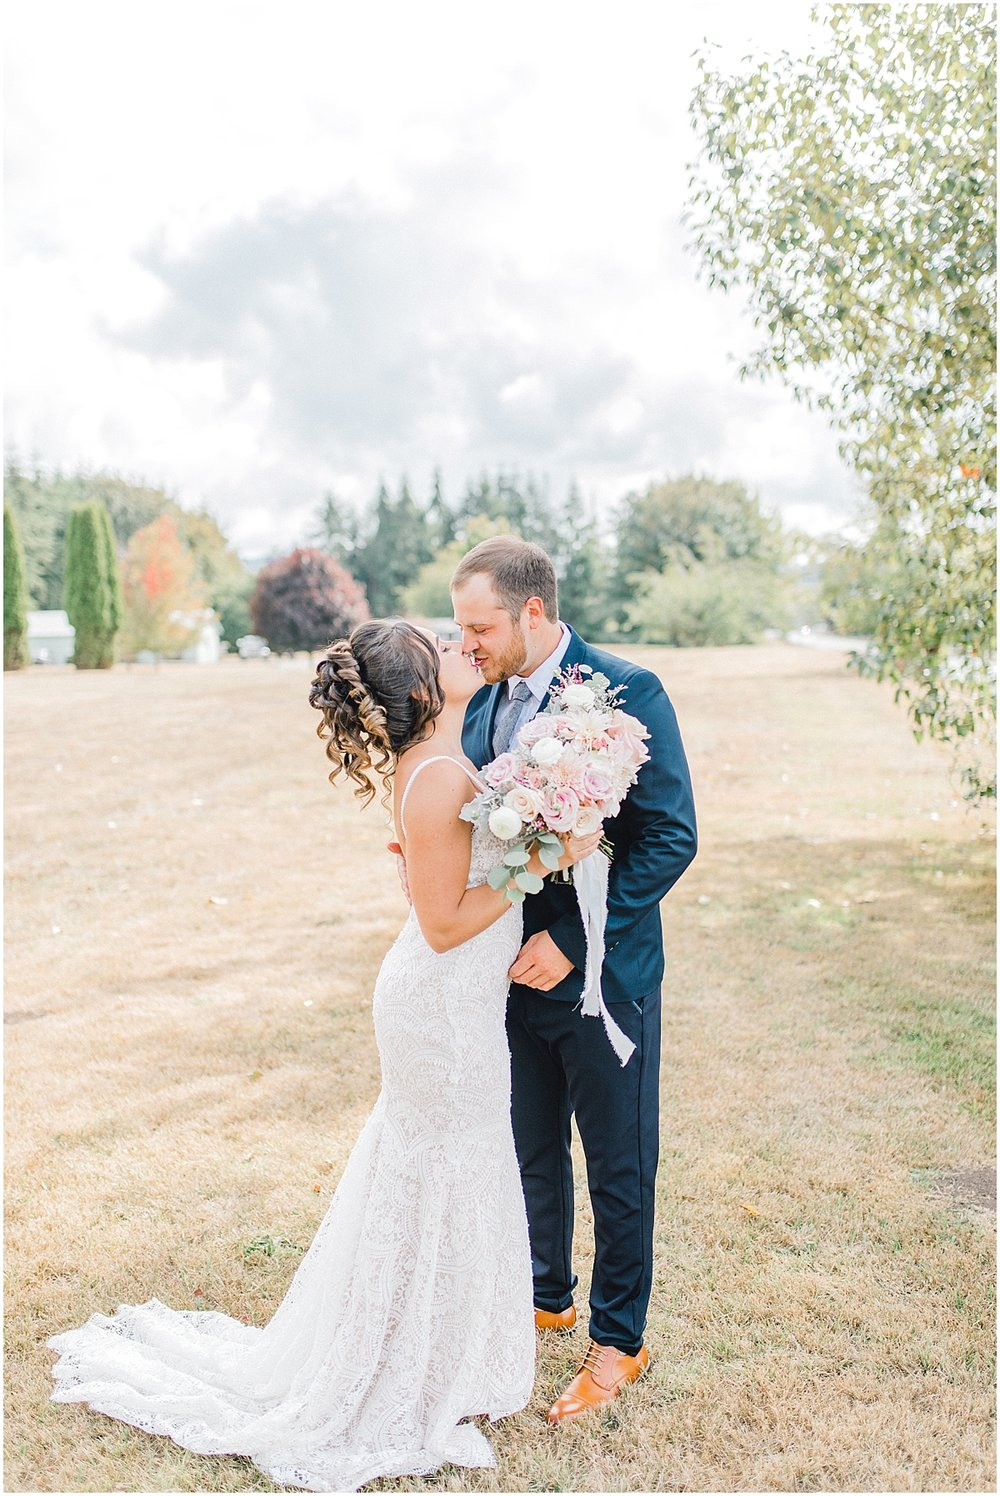 Beautiful mauve wedding in the Pacific Northwest, Emma Rose Company Light and Airy Wedding Photographer Seattle, Washington, Kindred Presets, Wedding Design Details Purple and Blush_0037.jpg